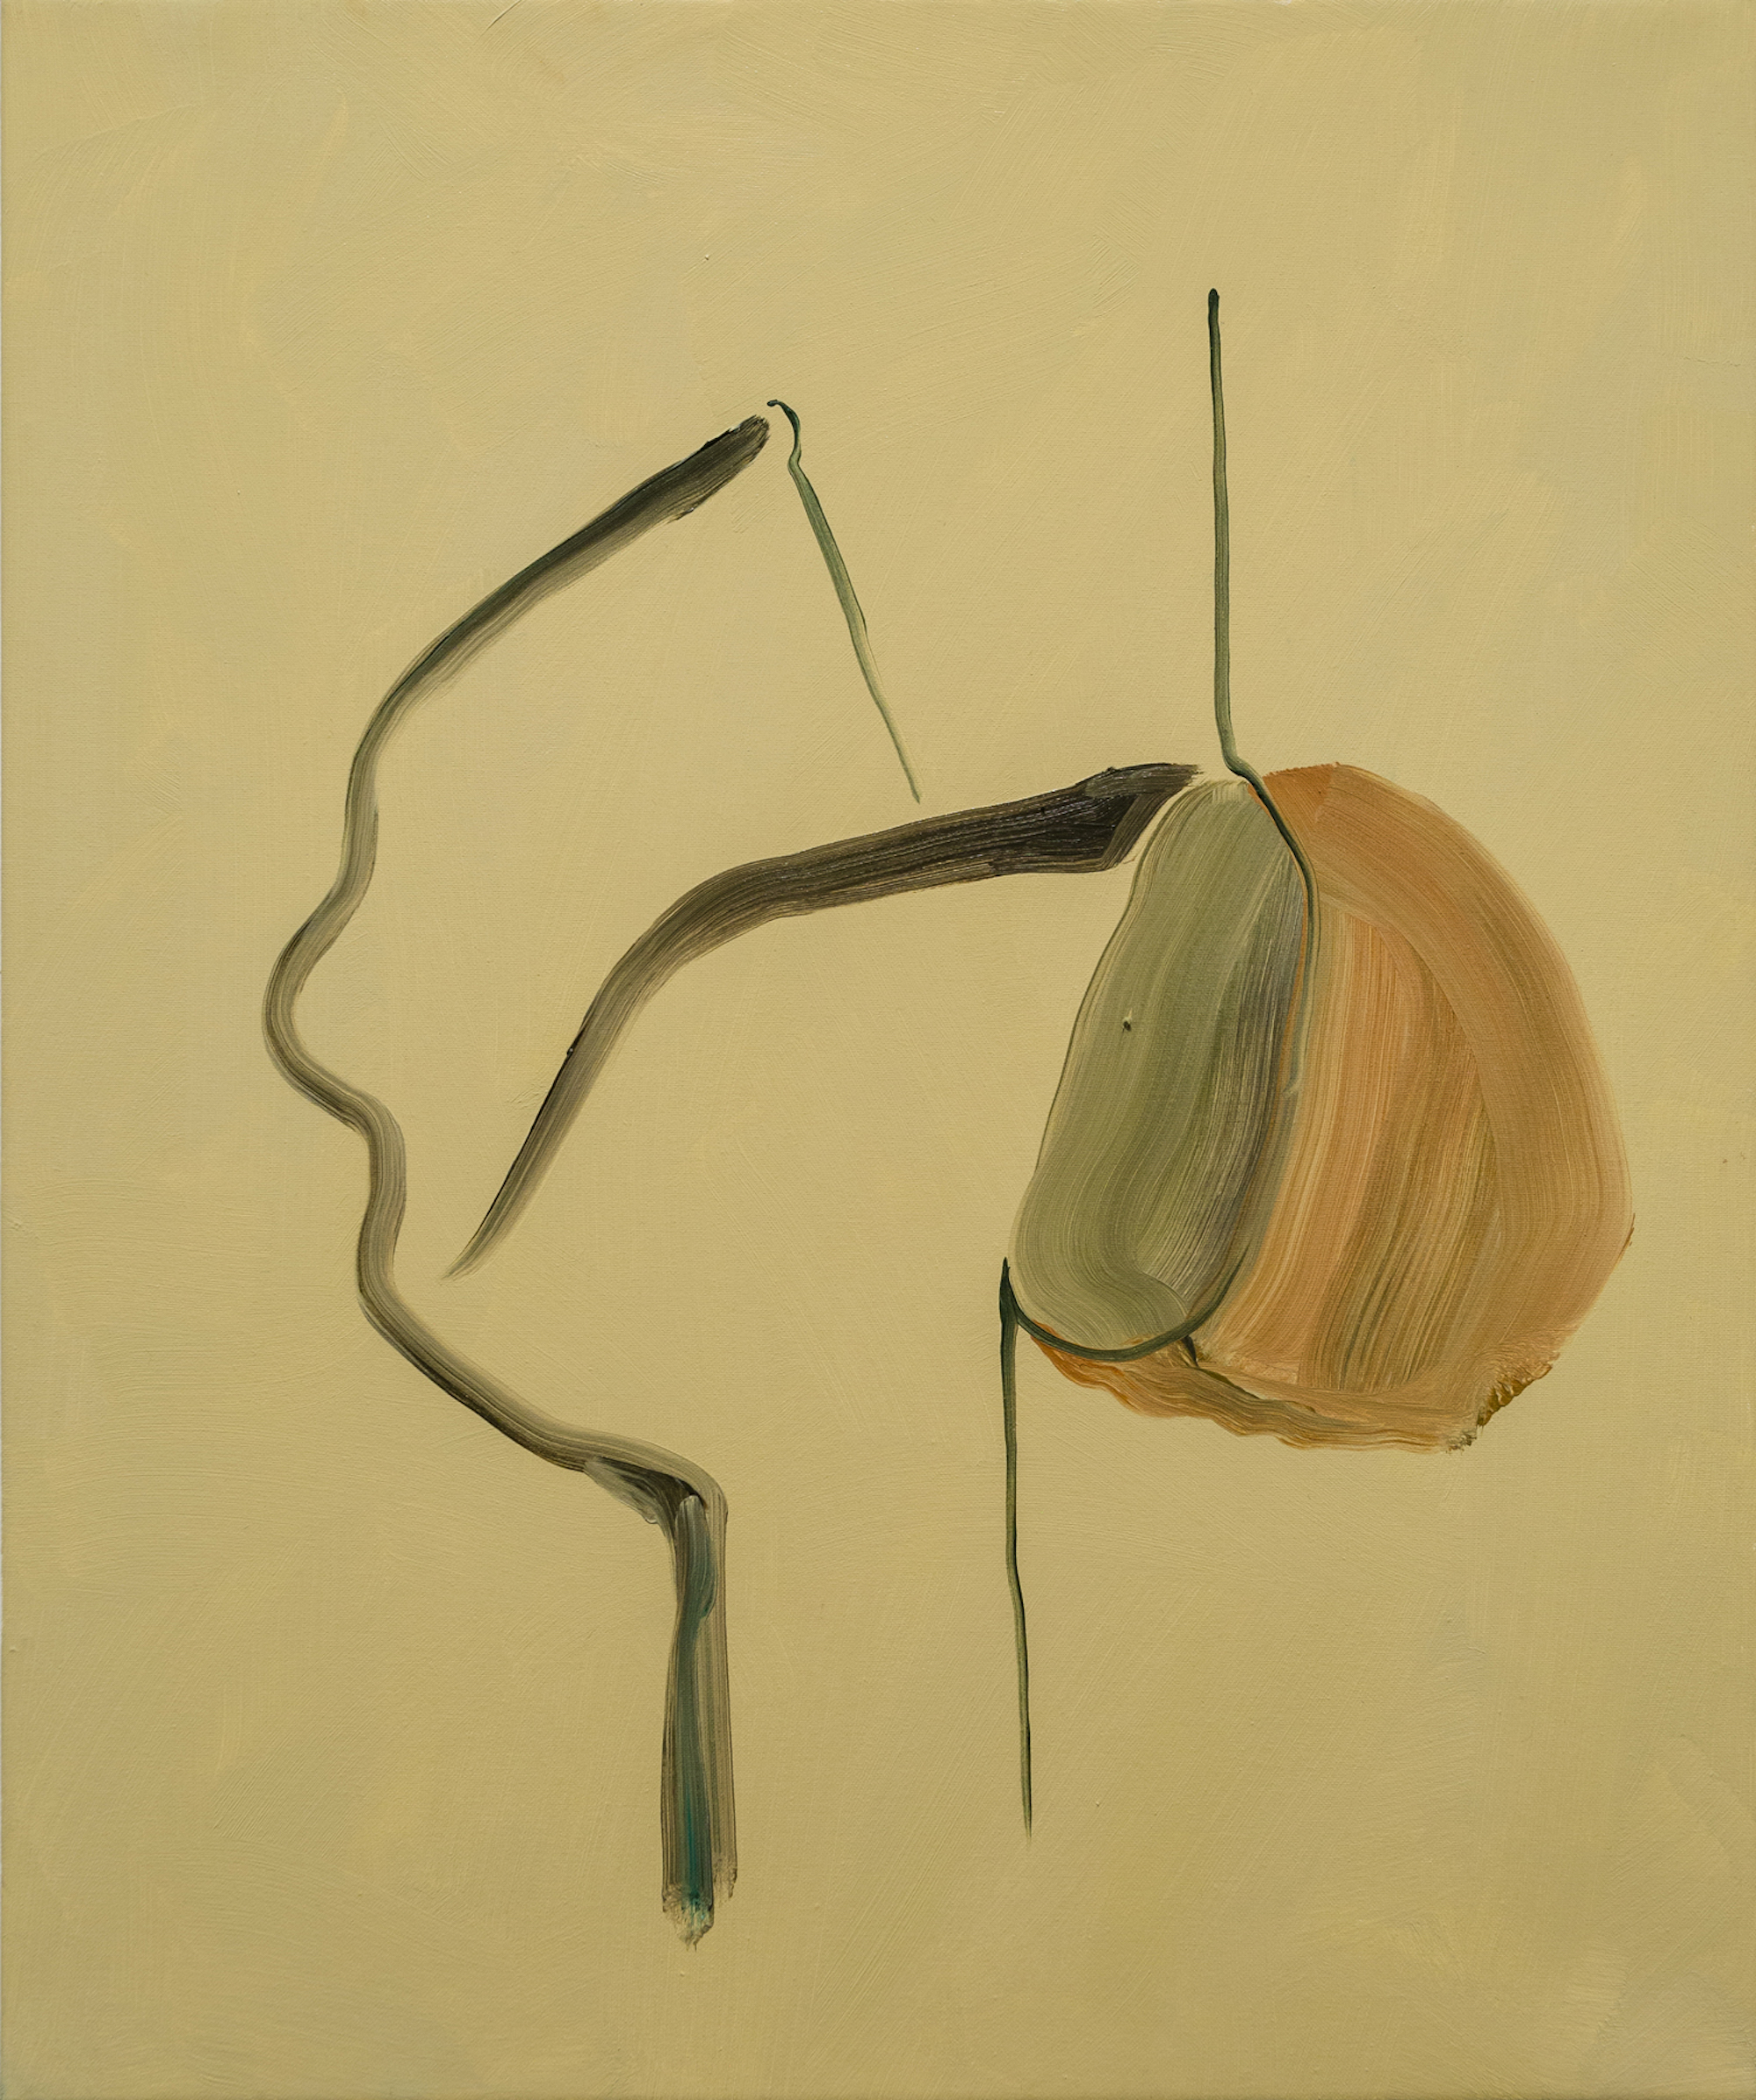 Sculpture 2015 Oil on canvas 60 x 50 cm